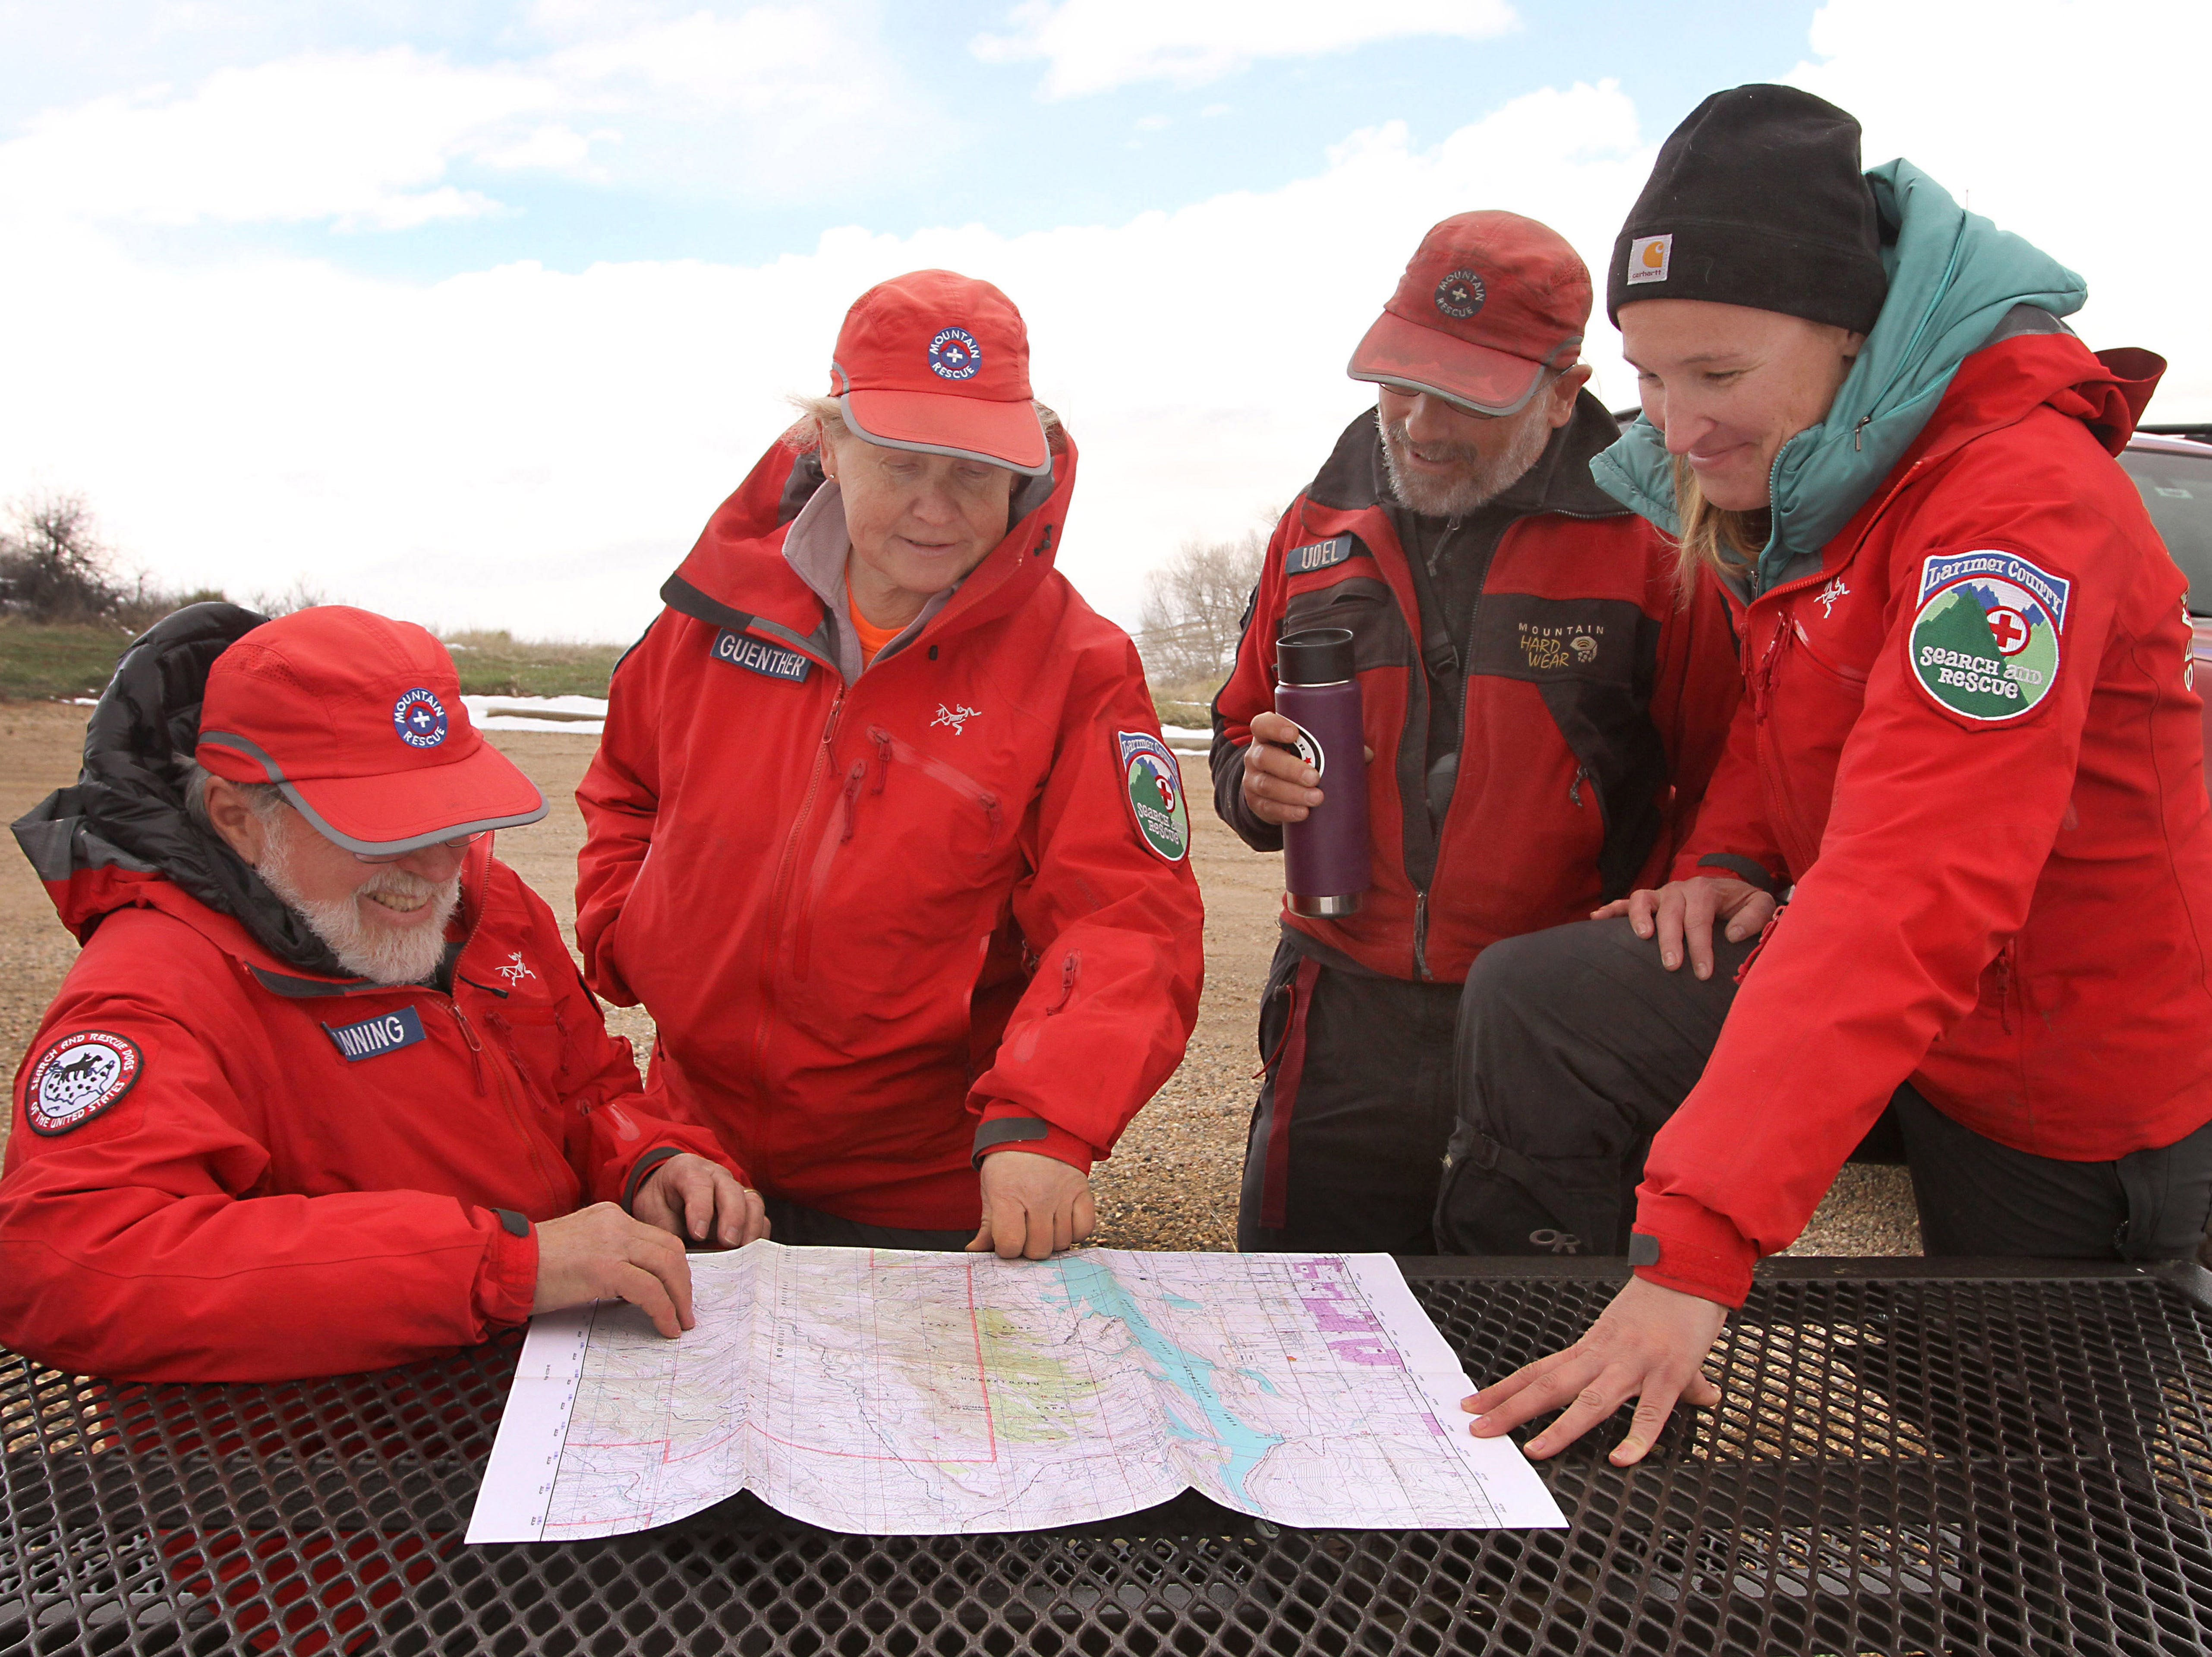 Larimer County Search and Rescue team members, from left, Dan Fanning, Ronnie Guenther, Jake Udel and Mary Babbitt scour an area map looking for locations to train their search and rescue dogs during a training event held at Lory State Park on Saturday, April 13, 2019.